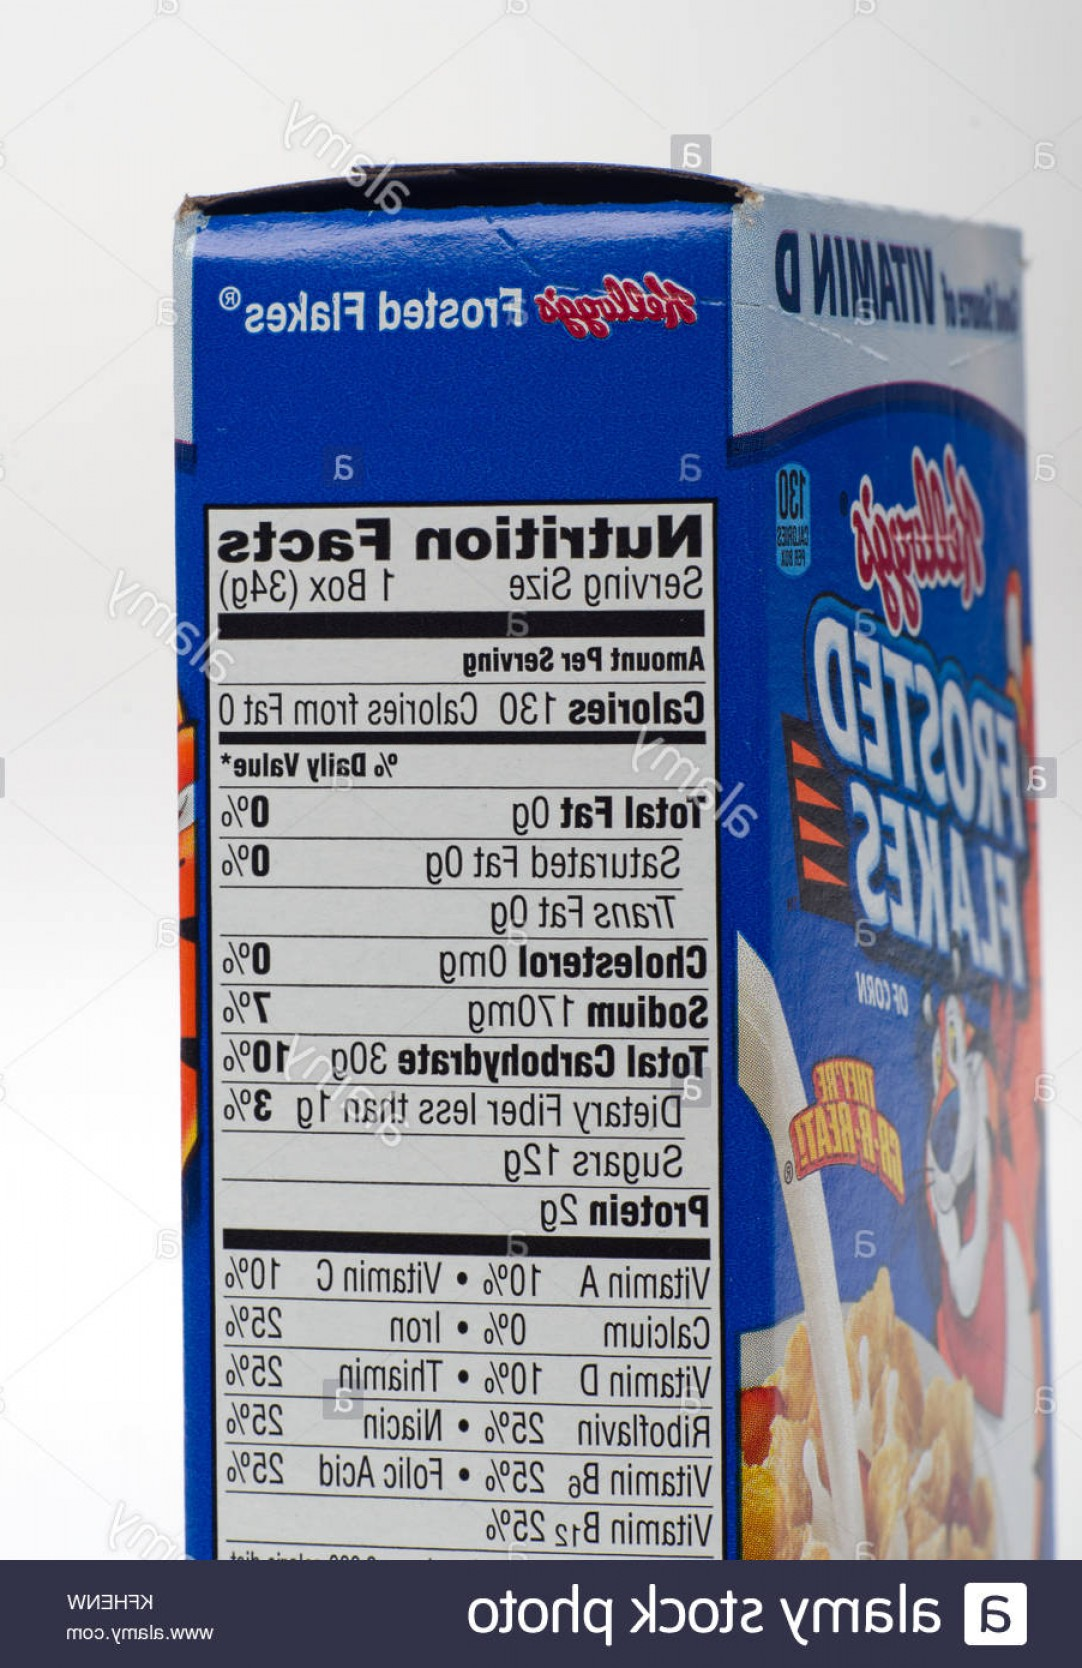 Nutrition Label Kellogg's Vector: Stock Photo Nutrition Facts Label For Kelloggs Frosted Flakes Cereal Close Up